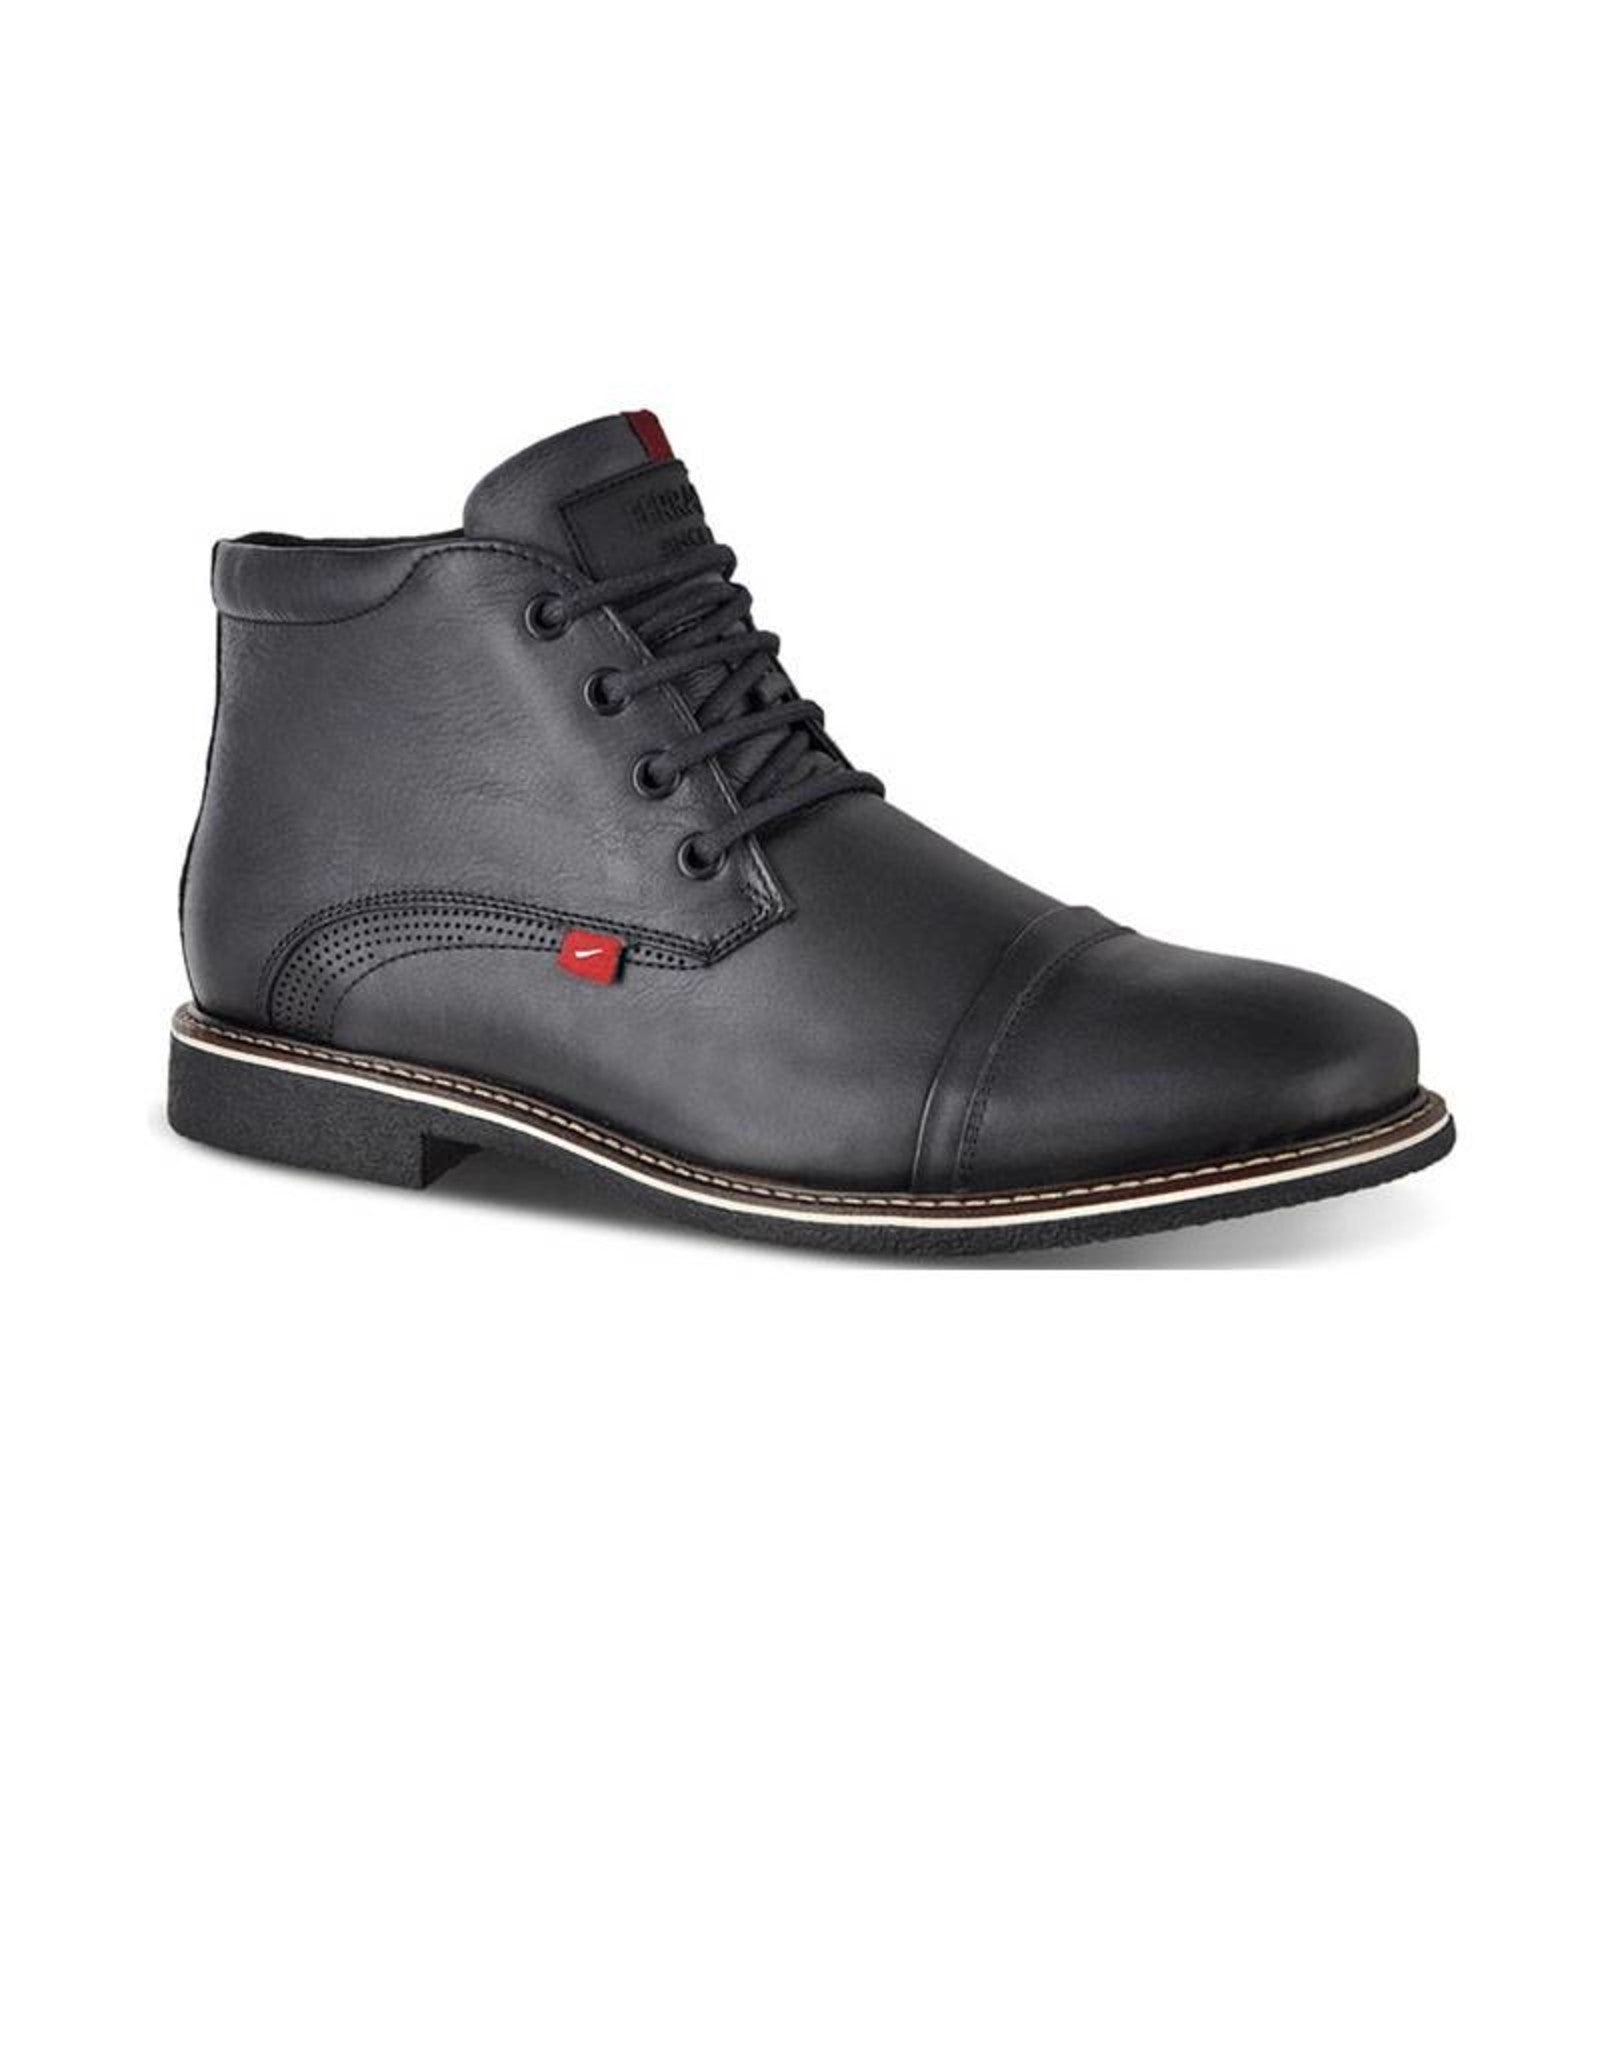 Ferracini Orson Casual Boot - Black - MitchellMcCabe